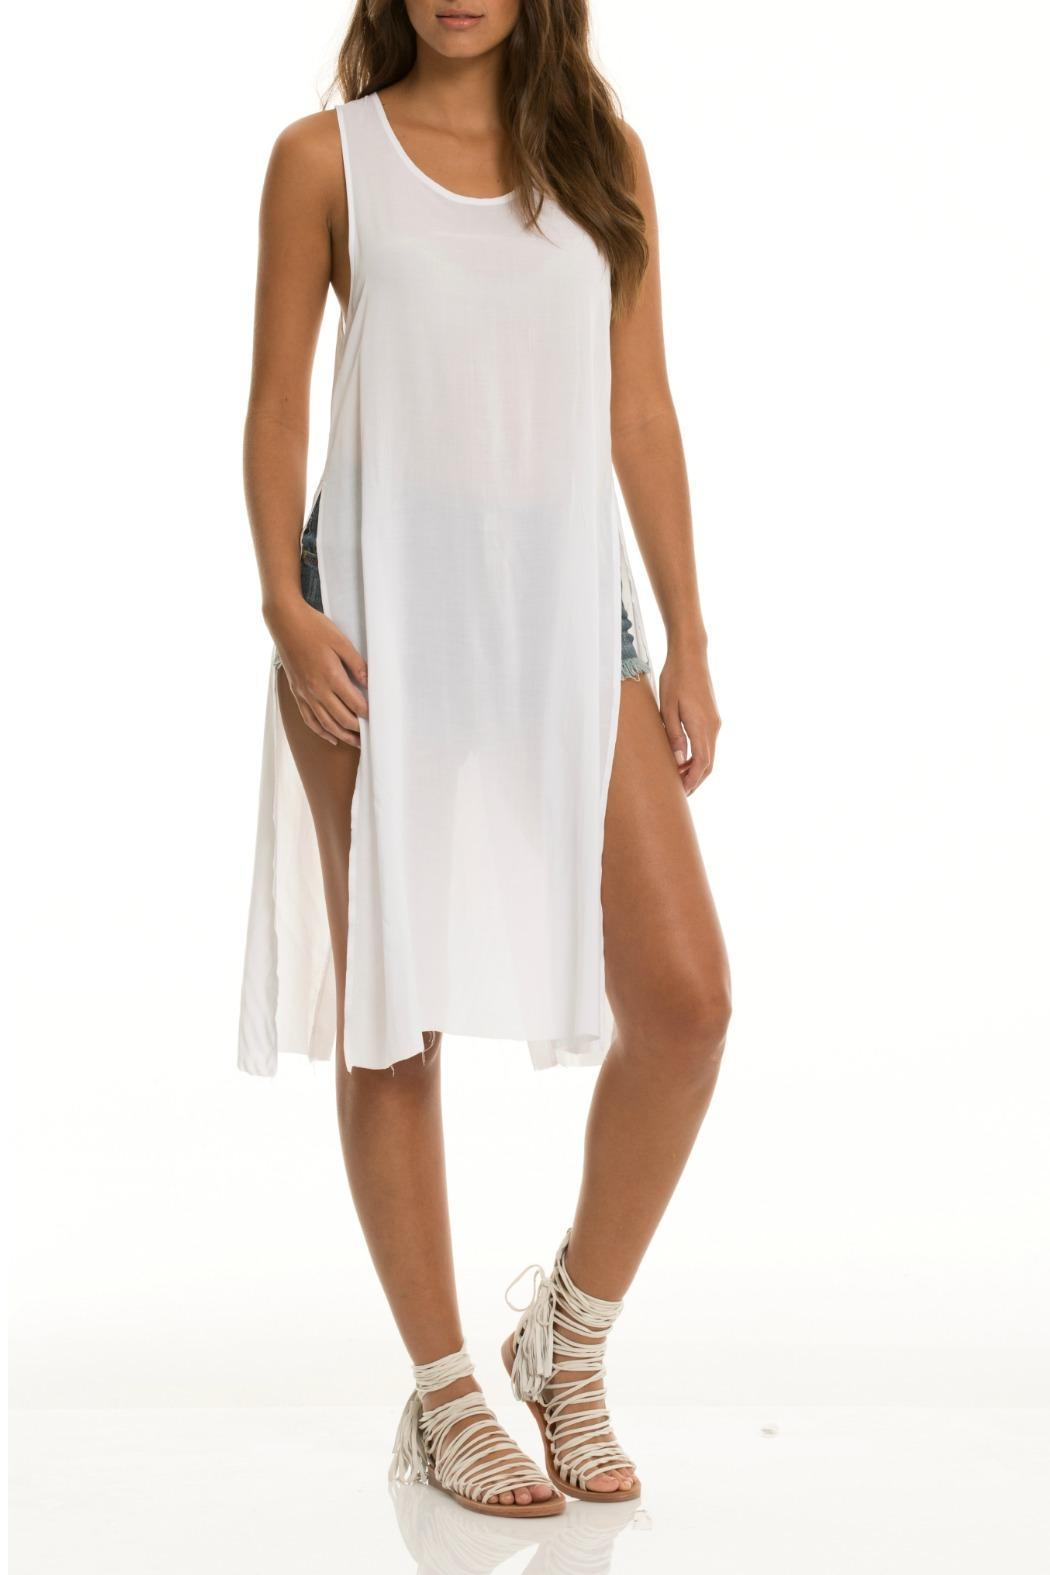 Elan White Sleeveless Tunic - Main Image